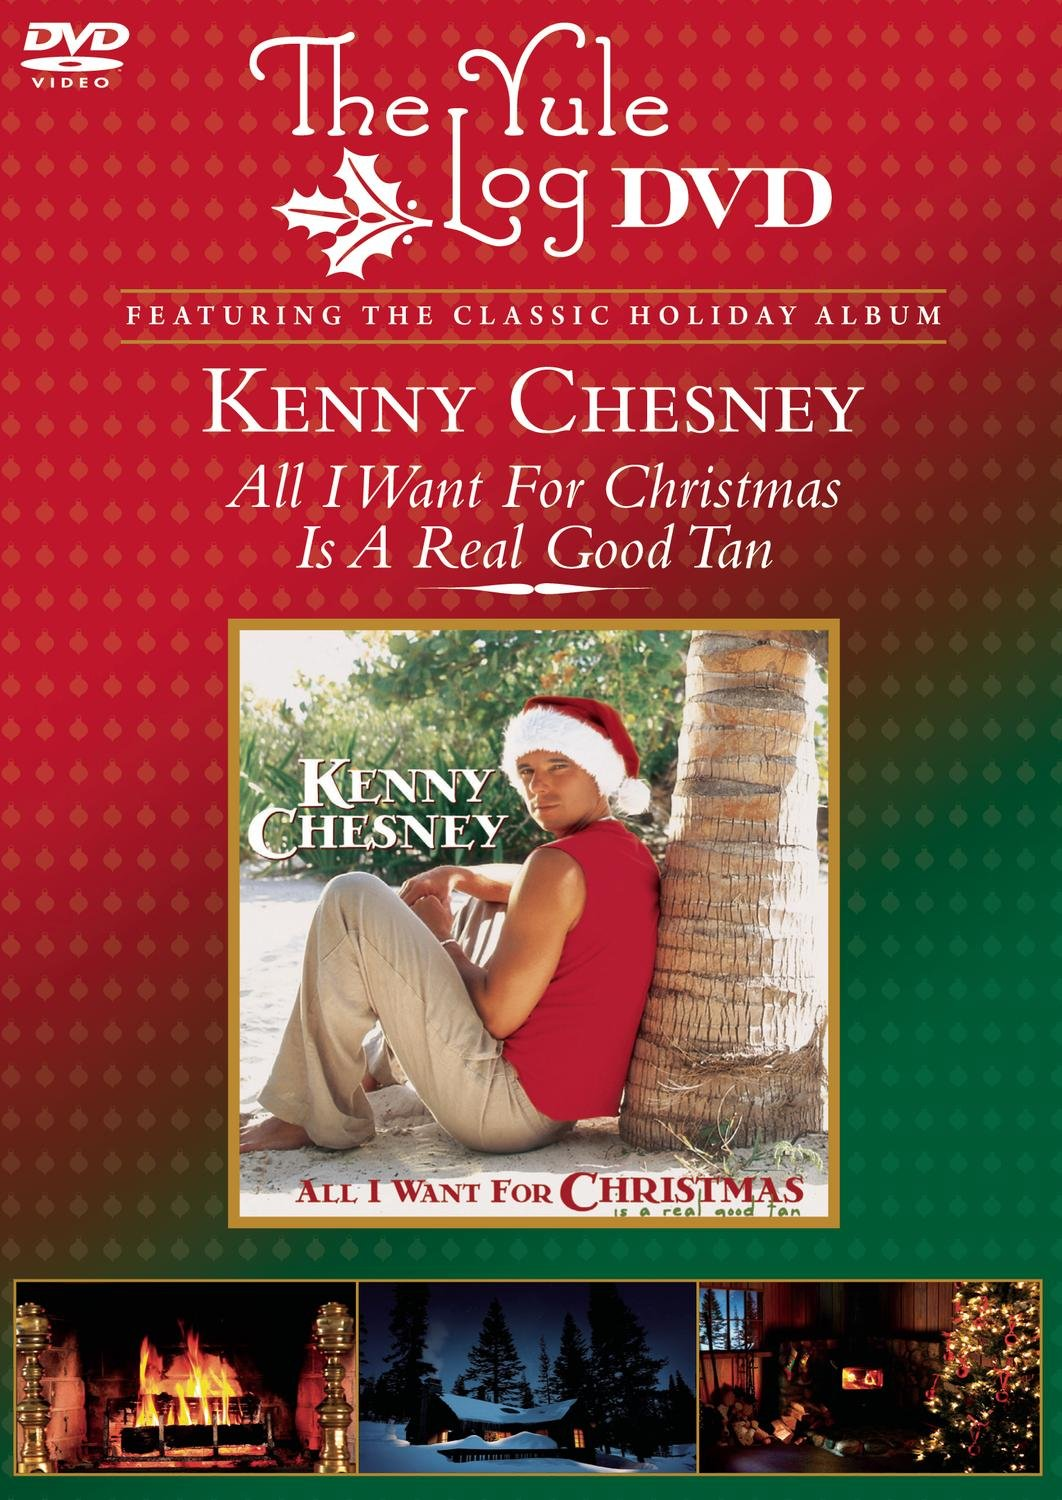 Amazon.com: All I Want for Christmas (The Yule Log DVD): Kenny ...